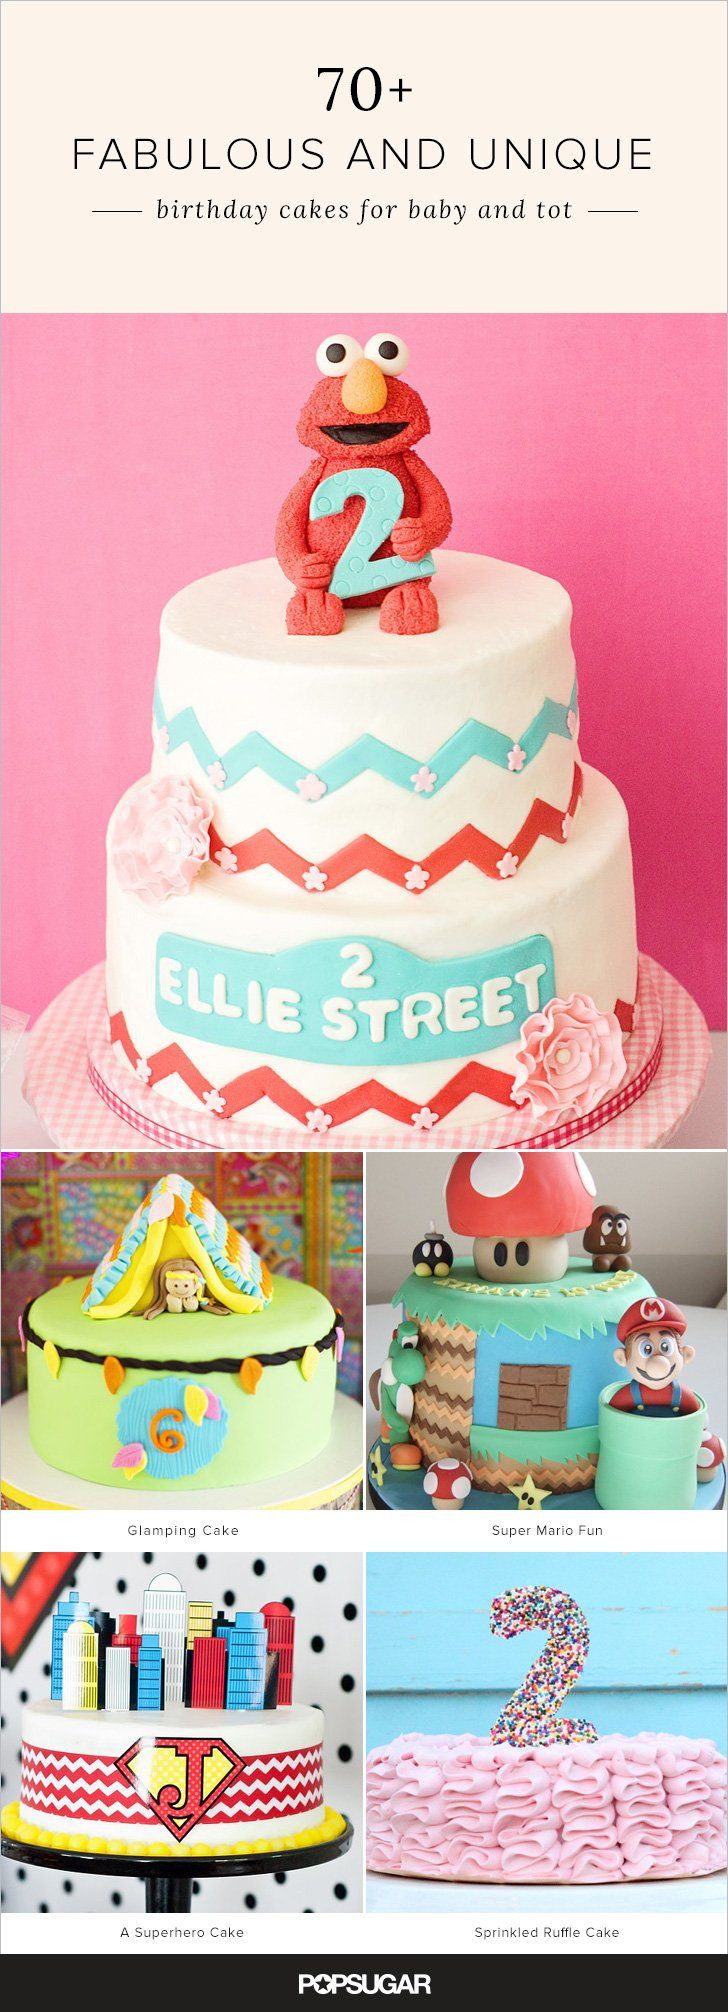 Best ideas about Unique Birthday Party Ideas . Save or Pin Best 25 Unique birthday cakes ideas on Pinterest Now.